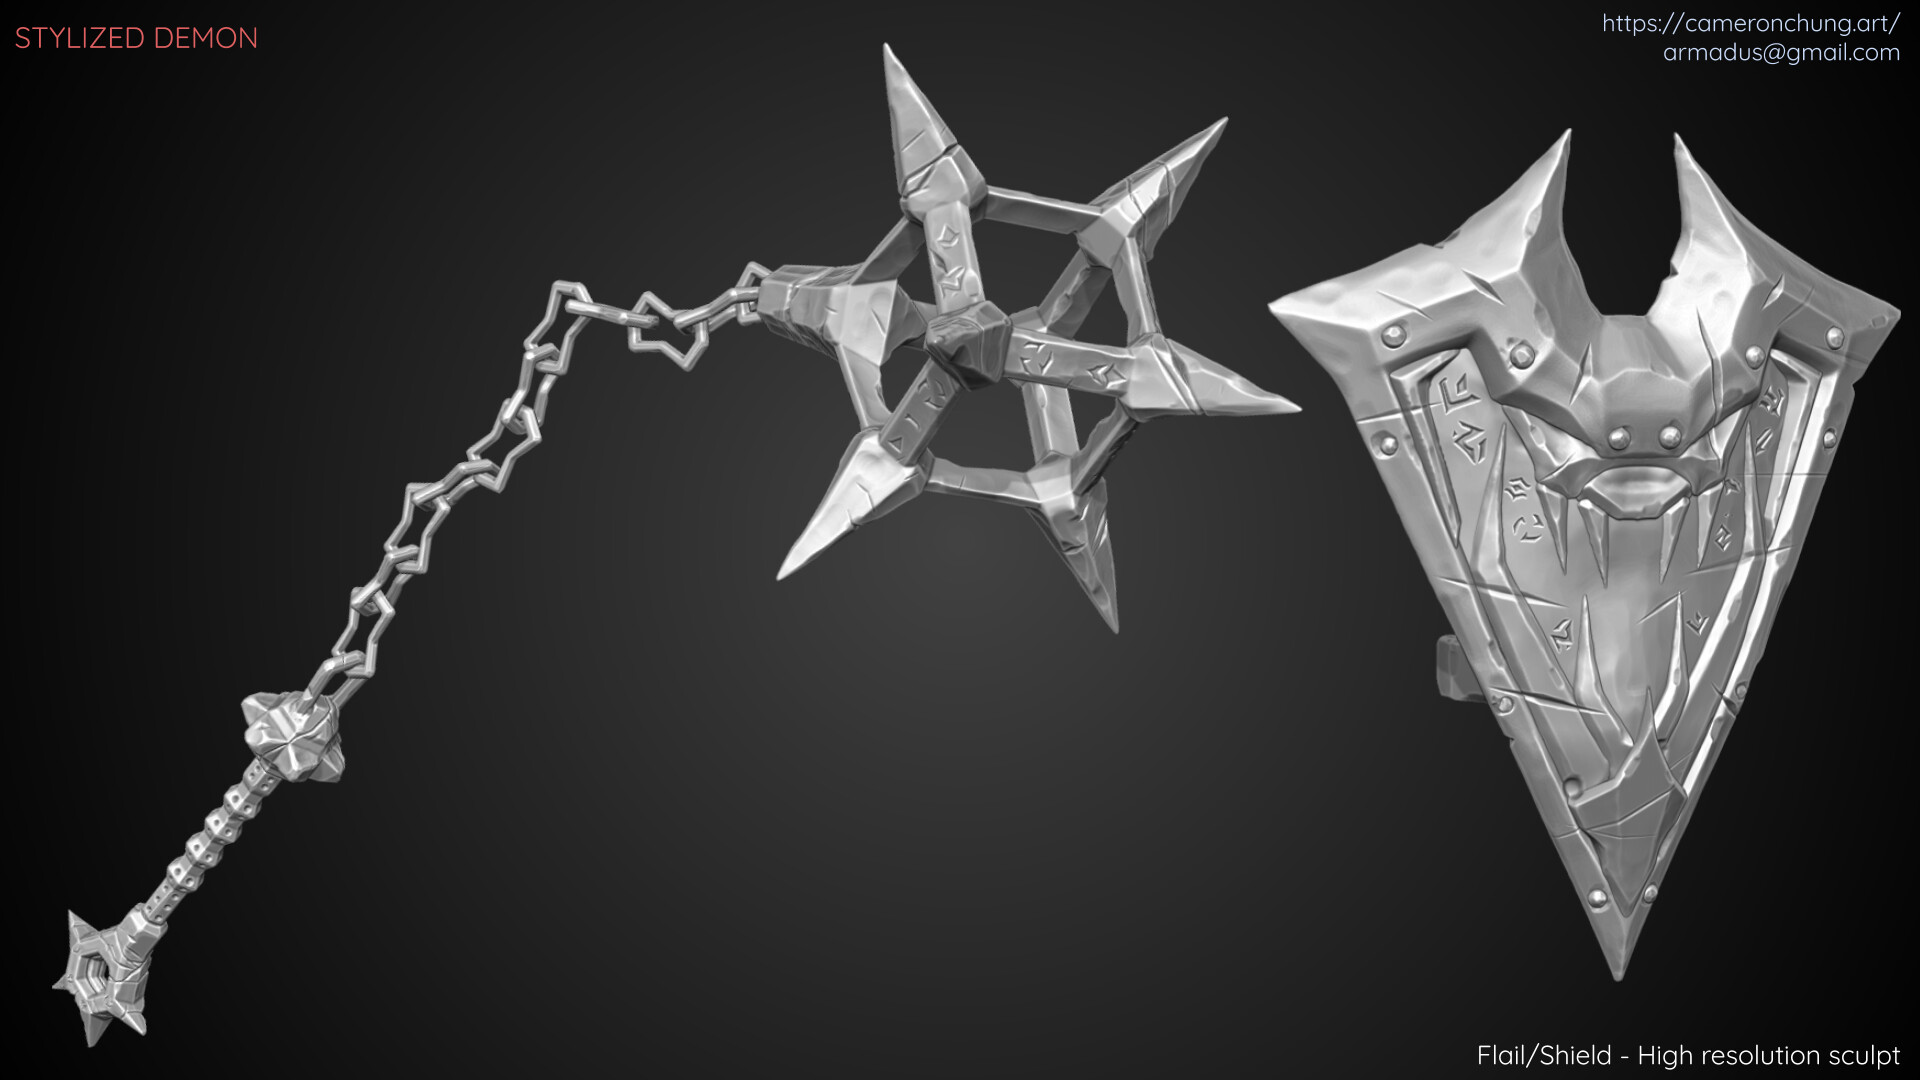 Flail / Shield - Zbrush sculpt